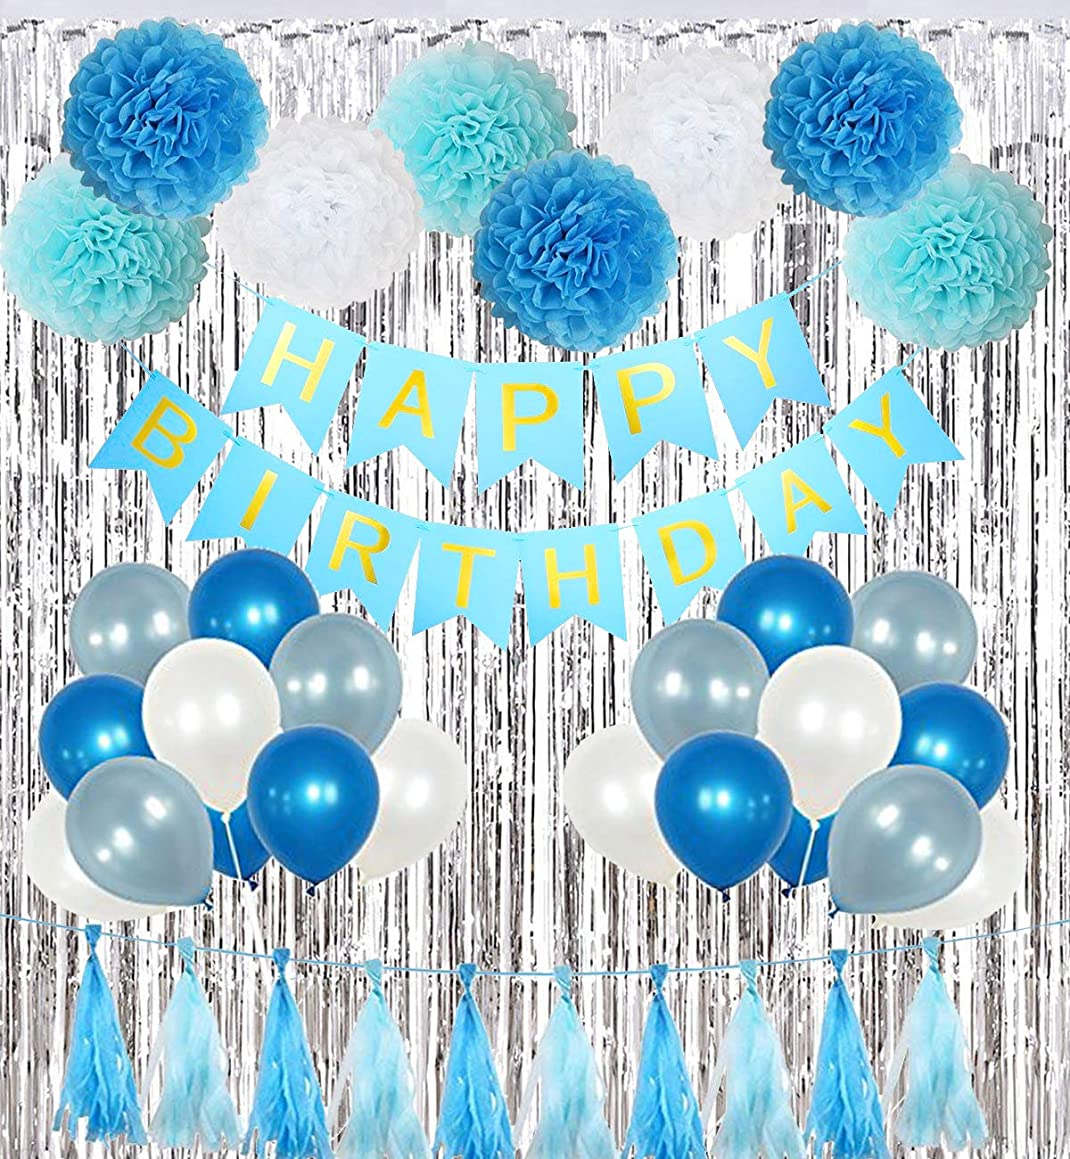 Birthday Party Decorations Kit?Boy Supplies with Banner, Balloons, Pom Poms Flowers, Foil Fringe Curtain, Paper Tassels in Blue